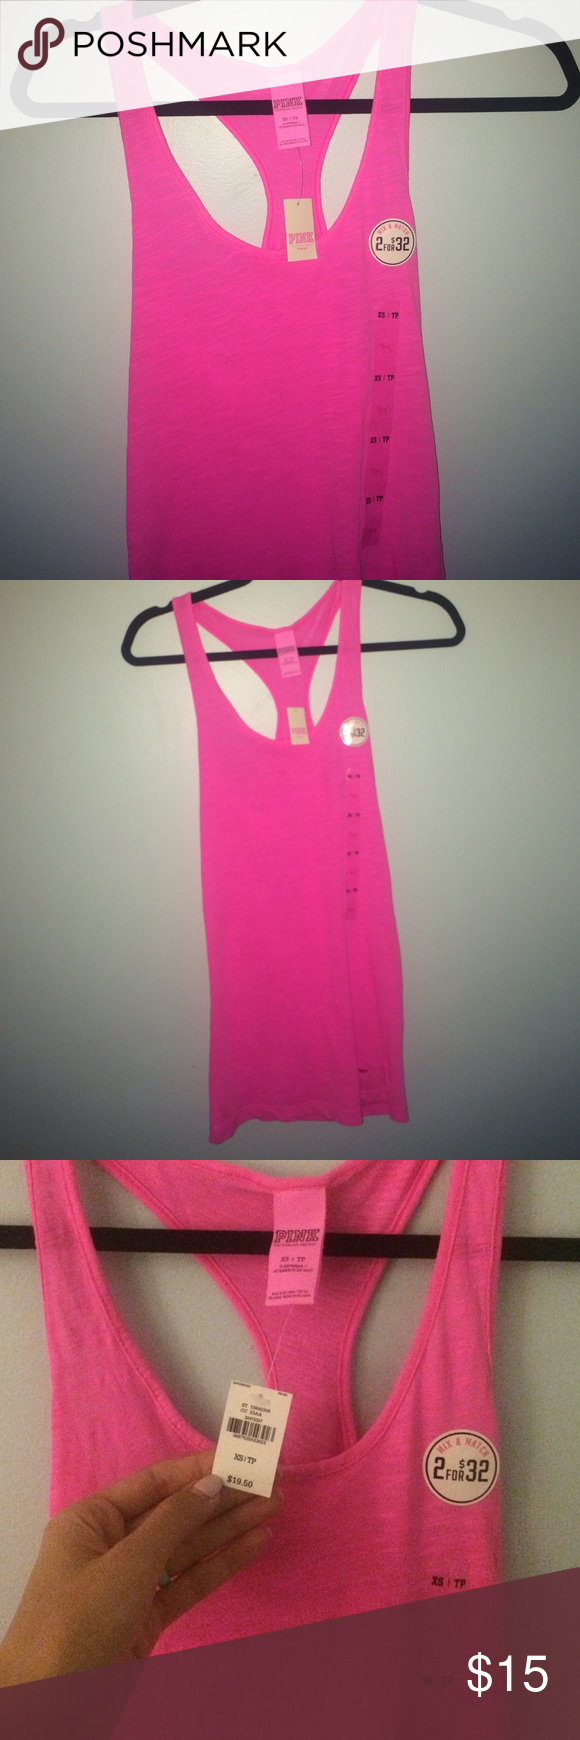 VS pink NWT racer back NWT never worn. Didn't fit me correctly. Bright pink super cute color!! good for working out or sleepwear 💎I accept reasonable offers💎 bundle to save! 💎 please no low balling ❌ PINK Victoria's Secret Tops Tank Tops